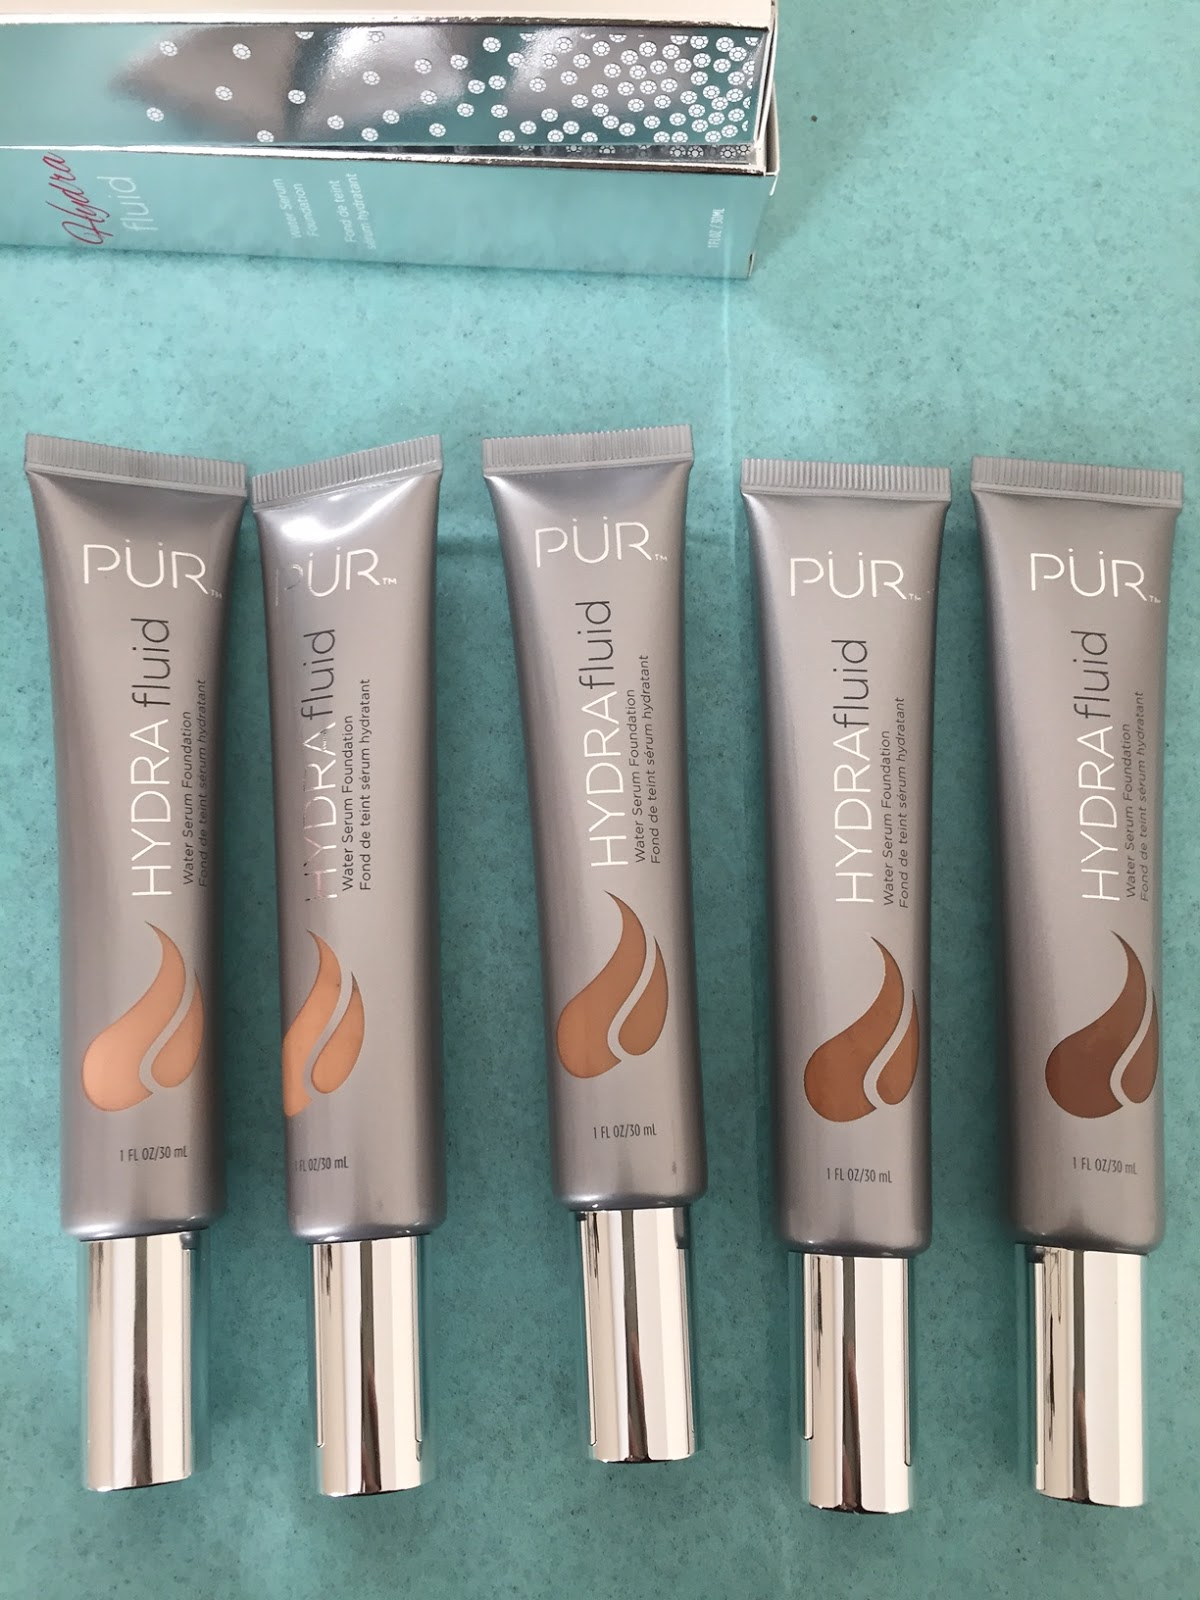 Pur minerals foundation review & swatches